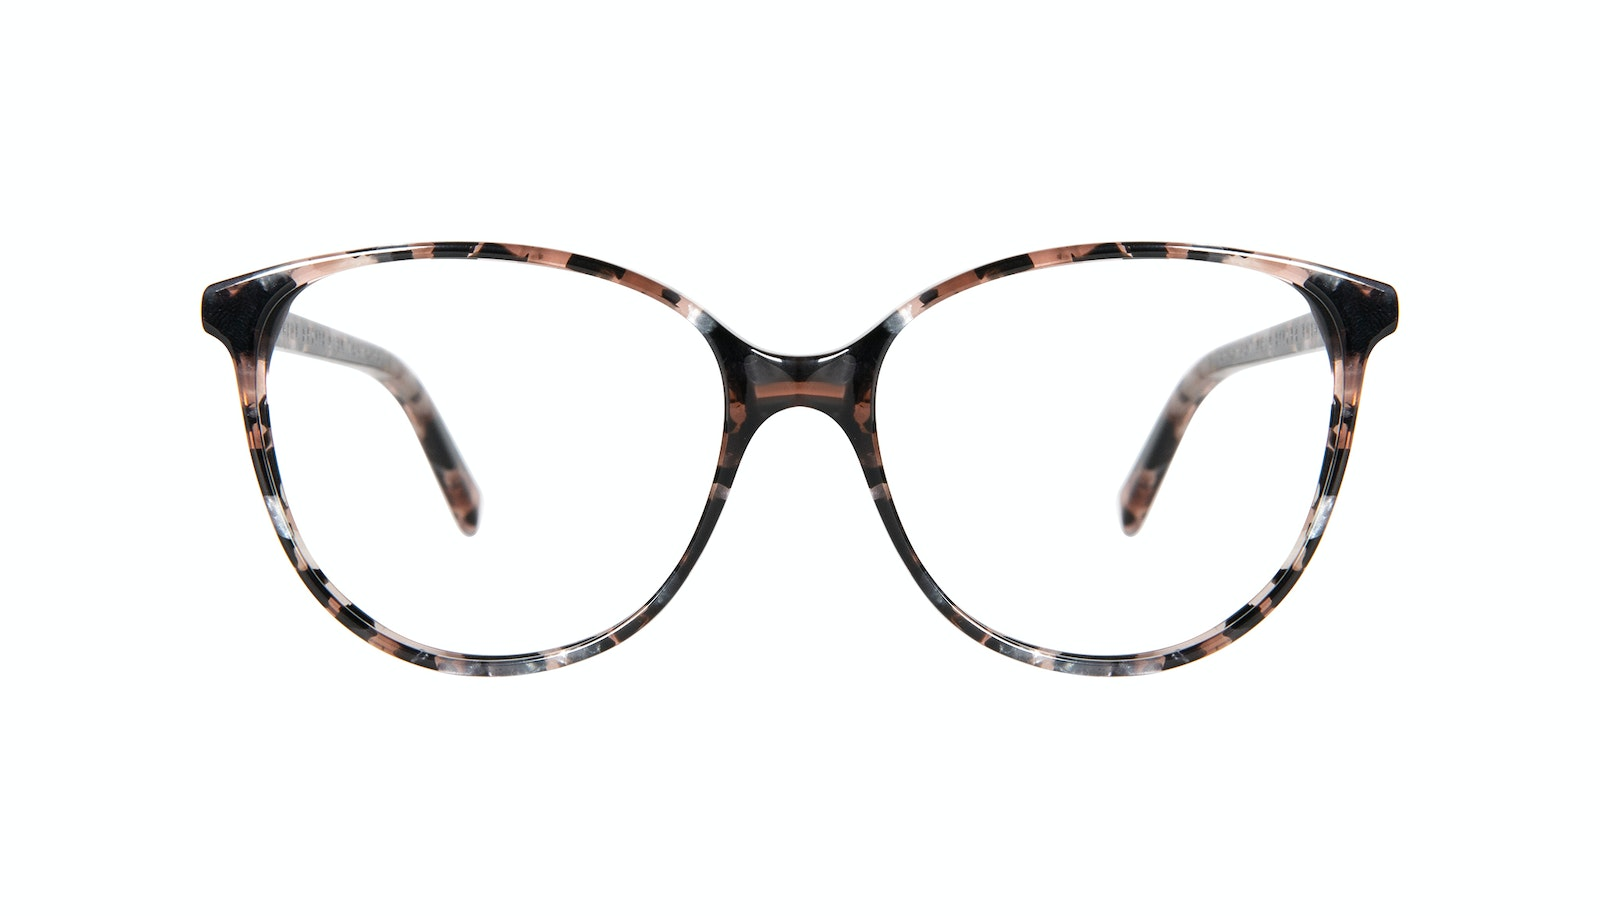 Affordable Fashion Glasses Round Eyeglasses Women Imagine Petite Pink Tortoise